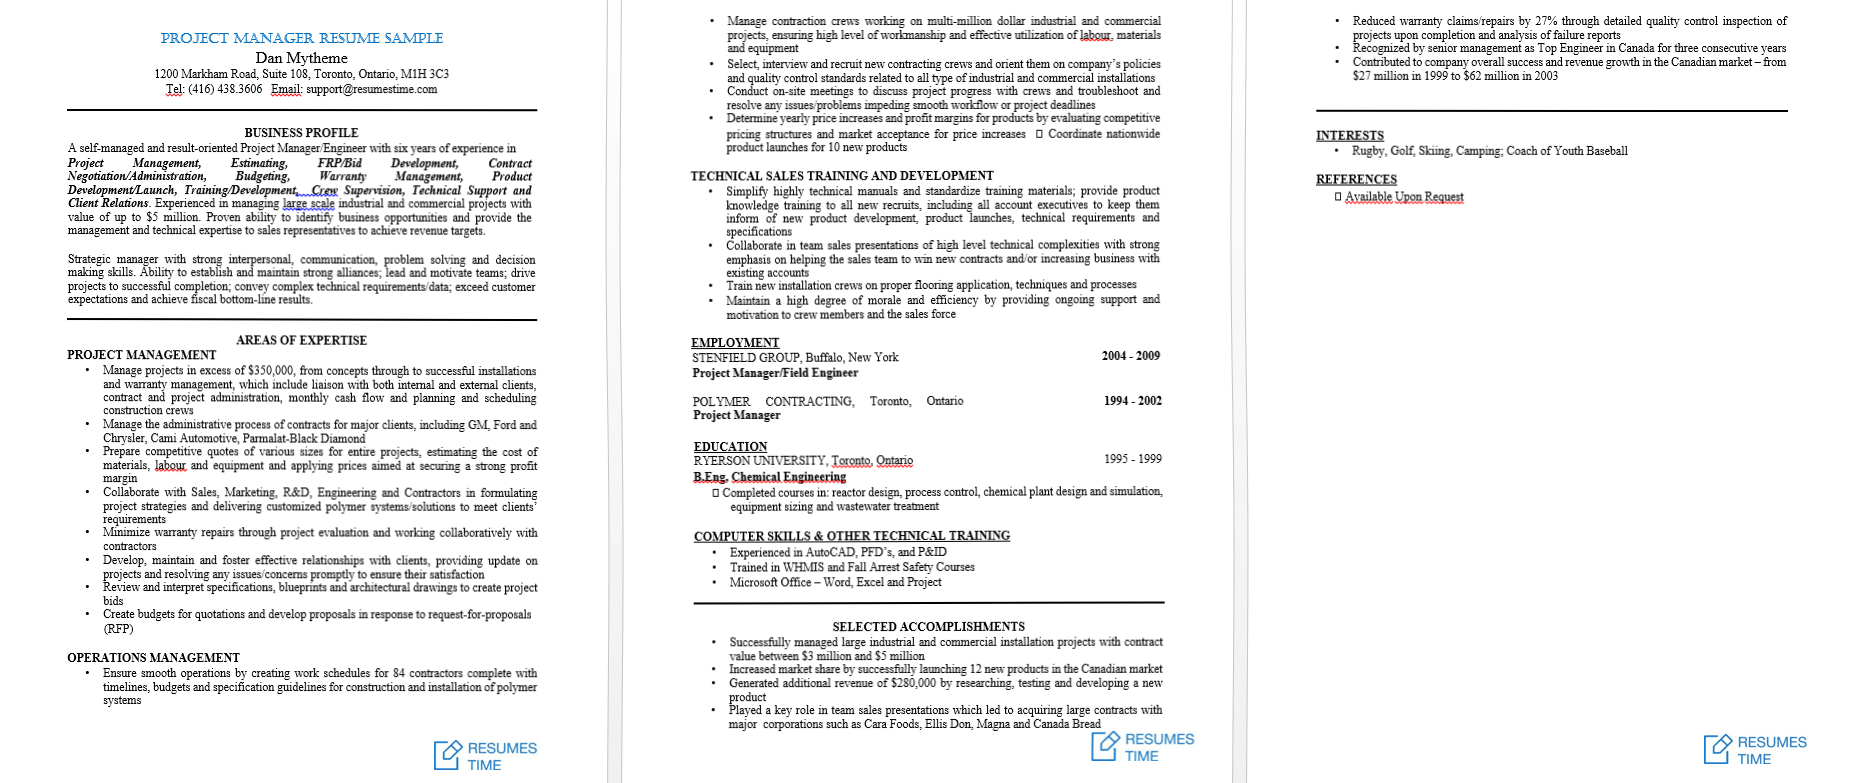 Rugby Coach Cover Letter 100 Free Resume Samples Examples At Resumestime